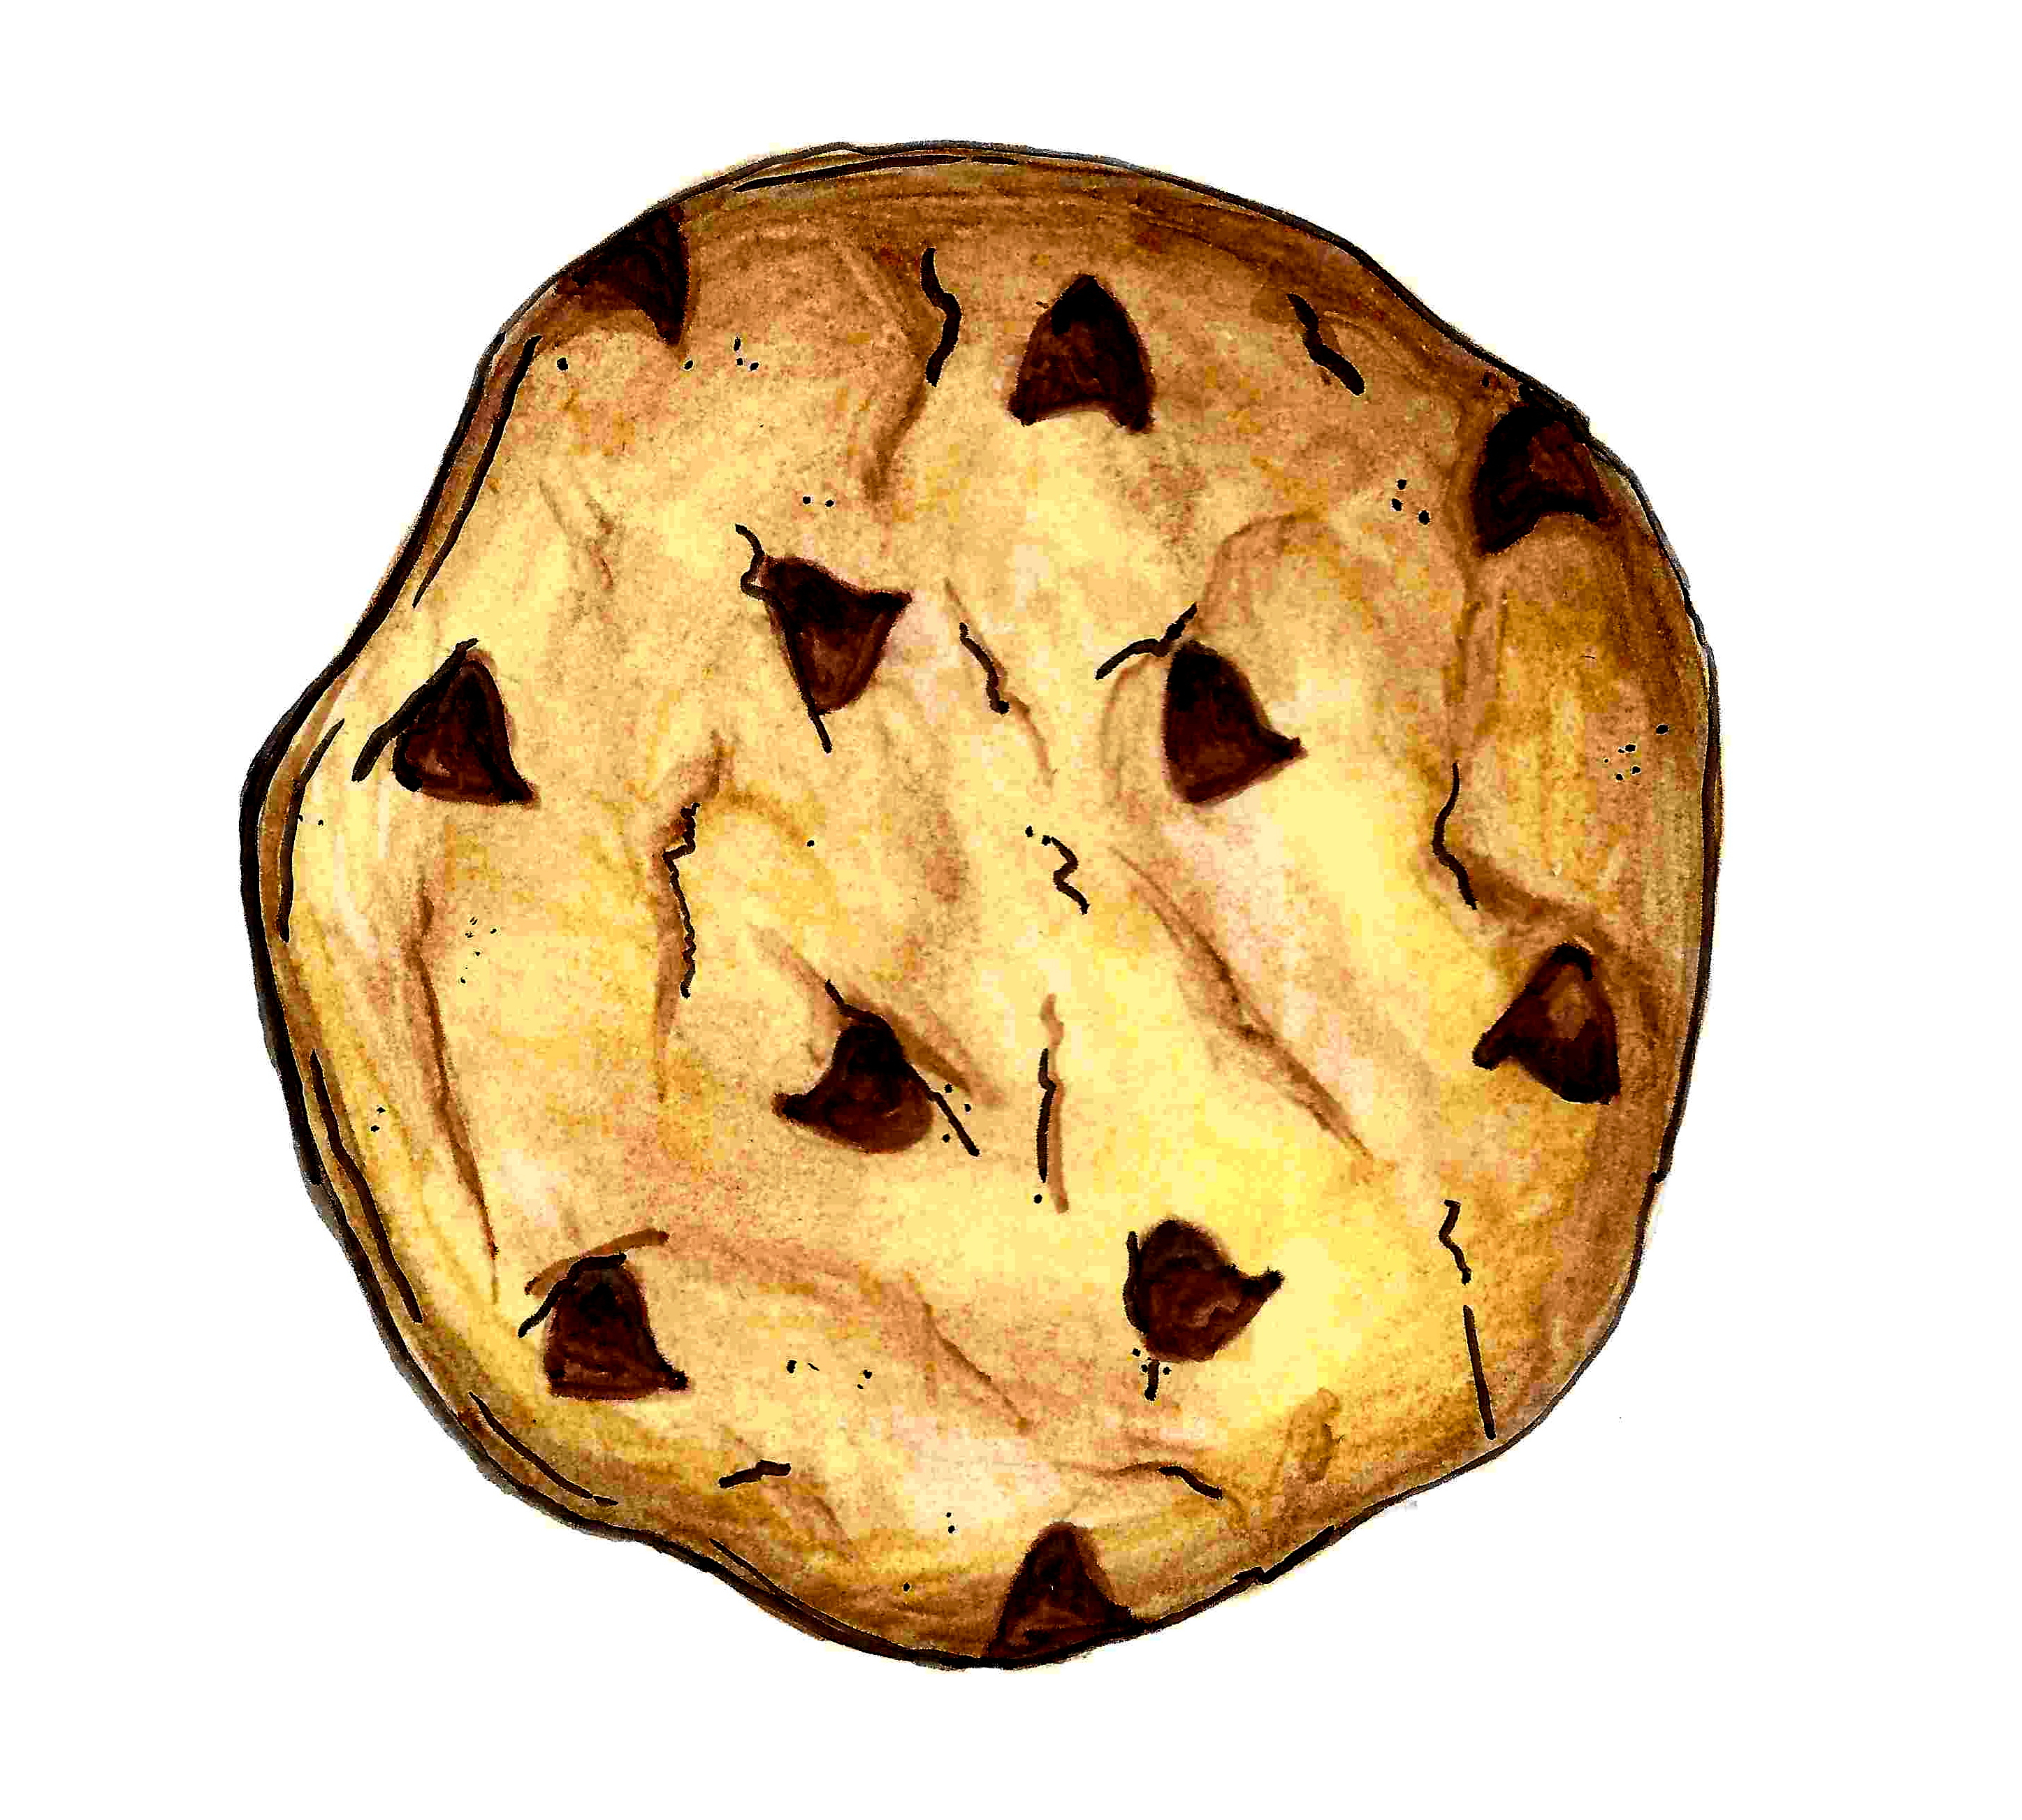 Drawing at getdrawings com. Baked goods clipart chocolate chip cookie